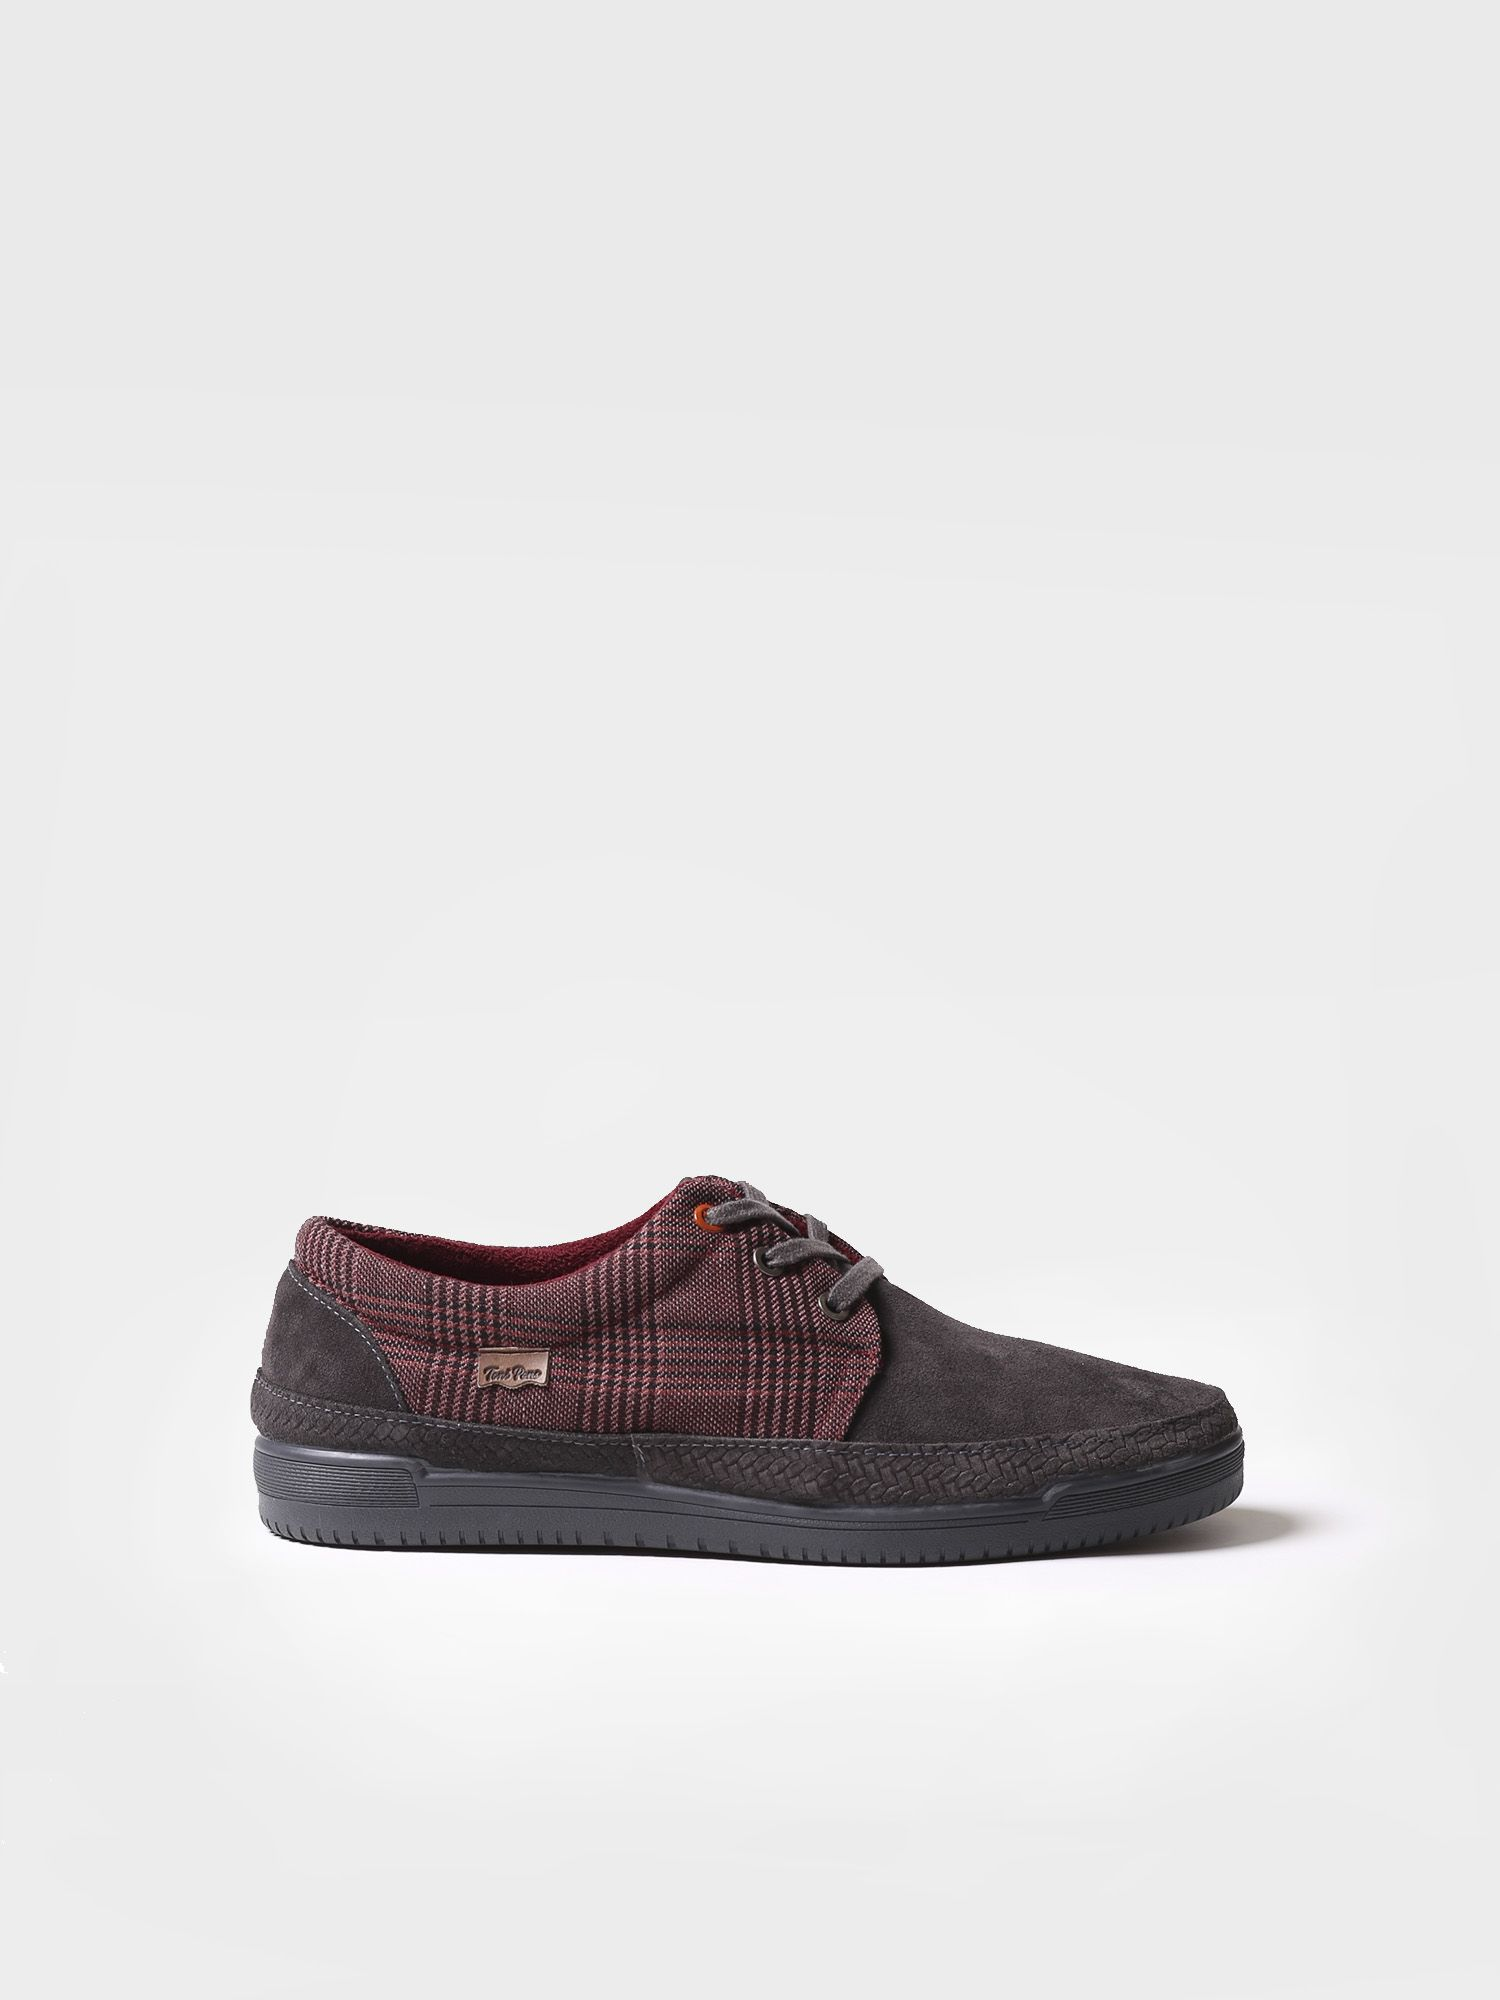 Sneaker for men made of cotton and suede - GENIS-CA